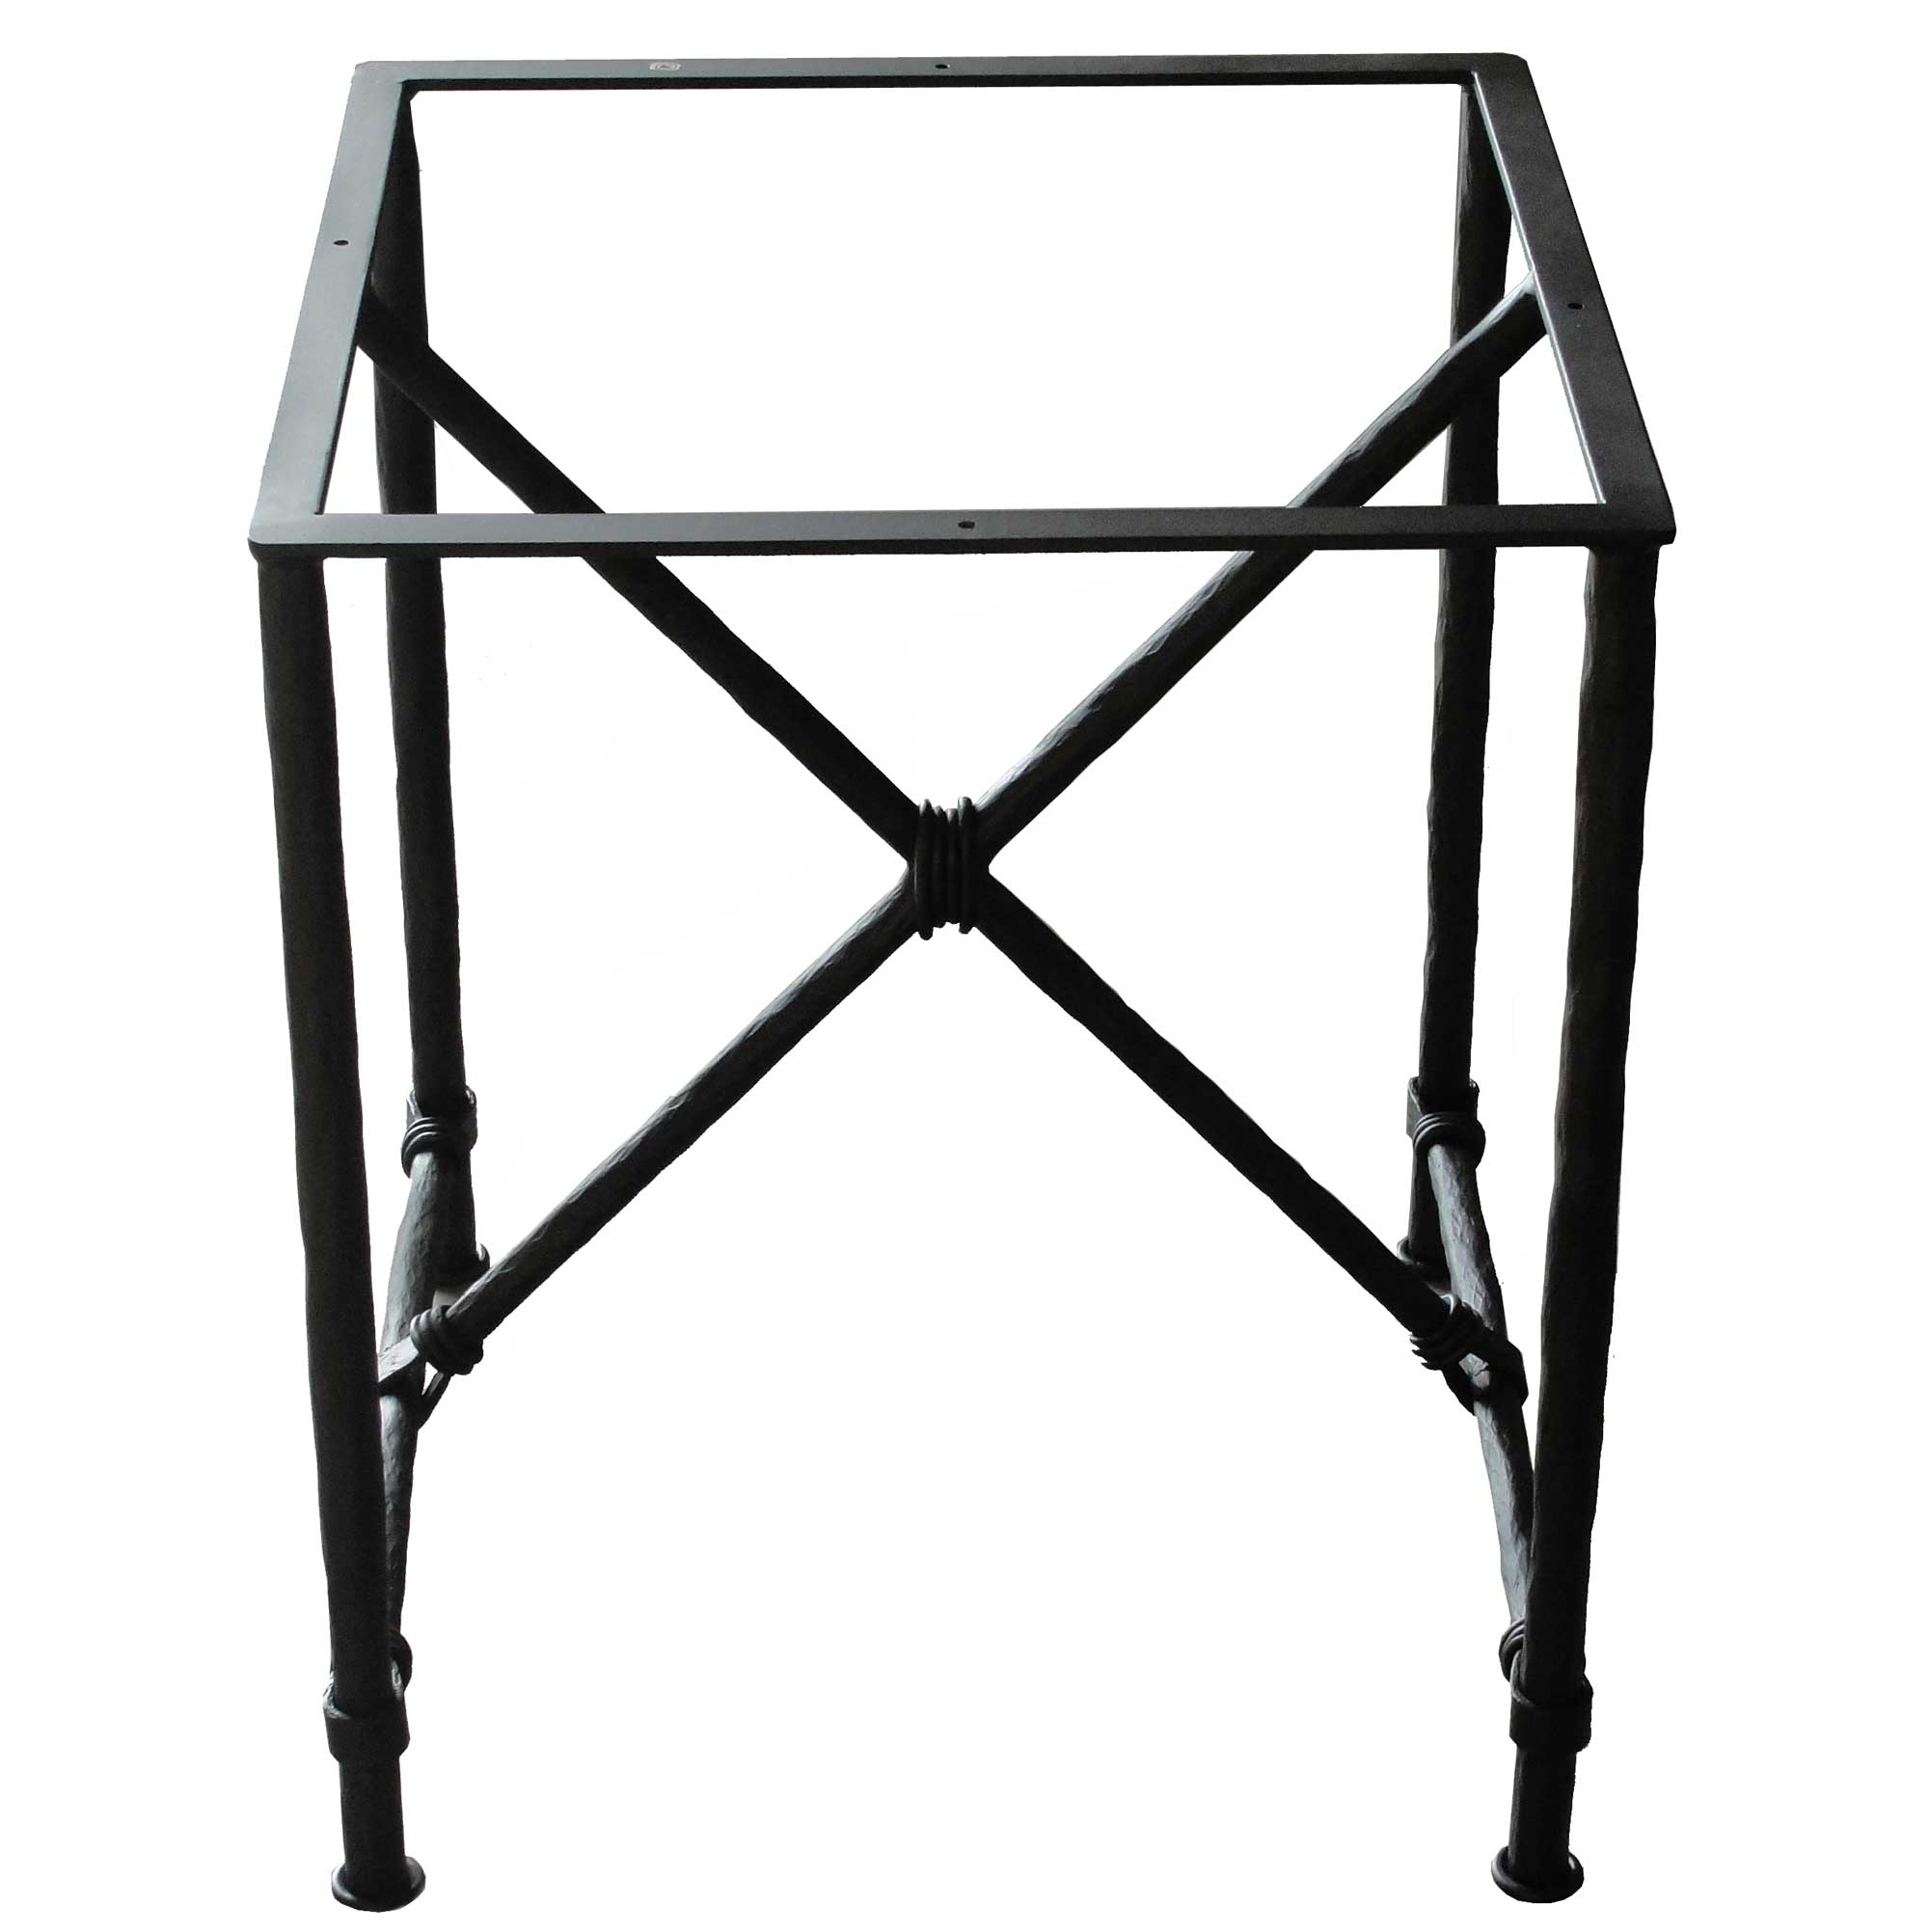 Twi 70 542p for Wrought iron side table base